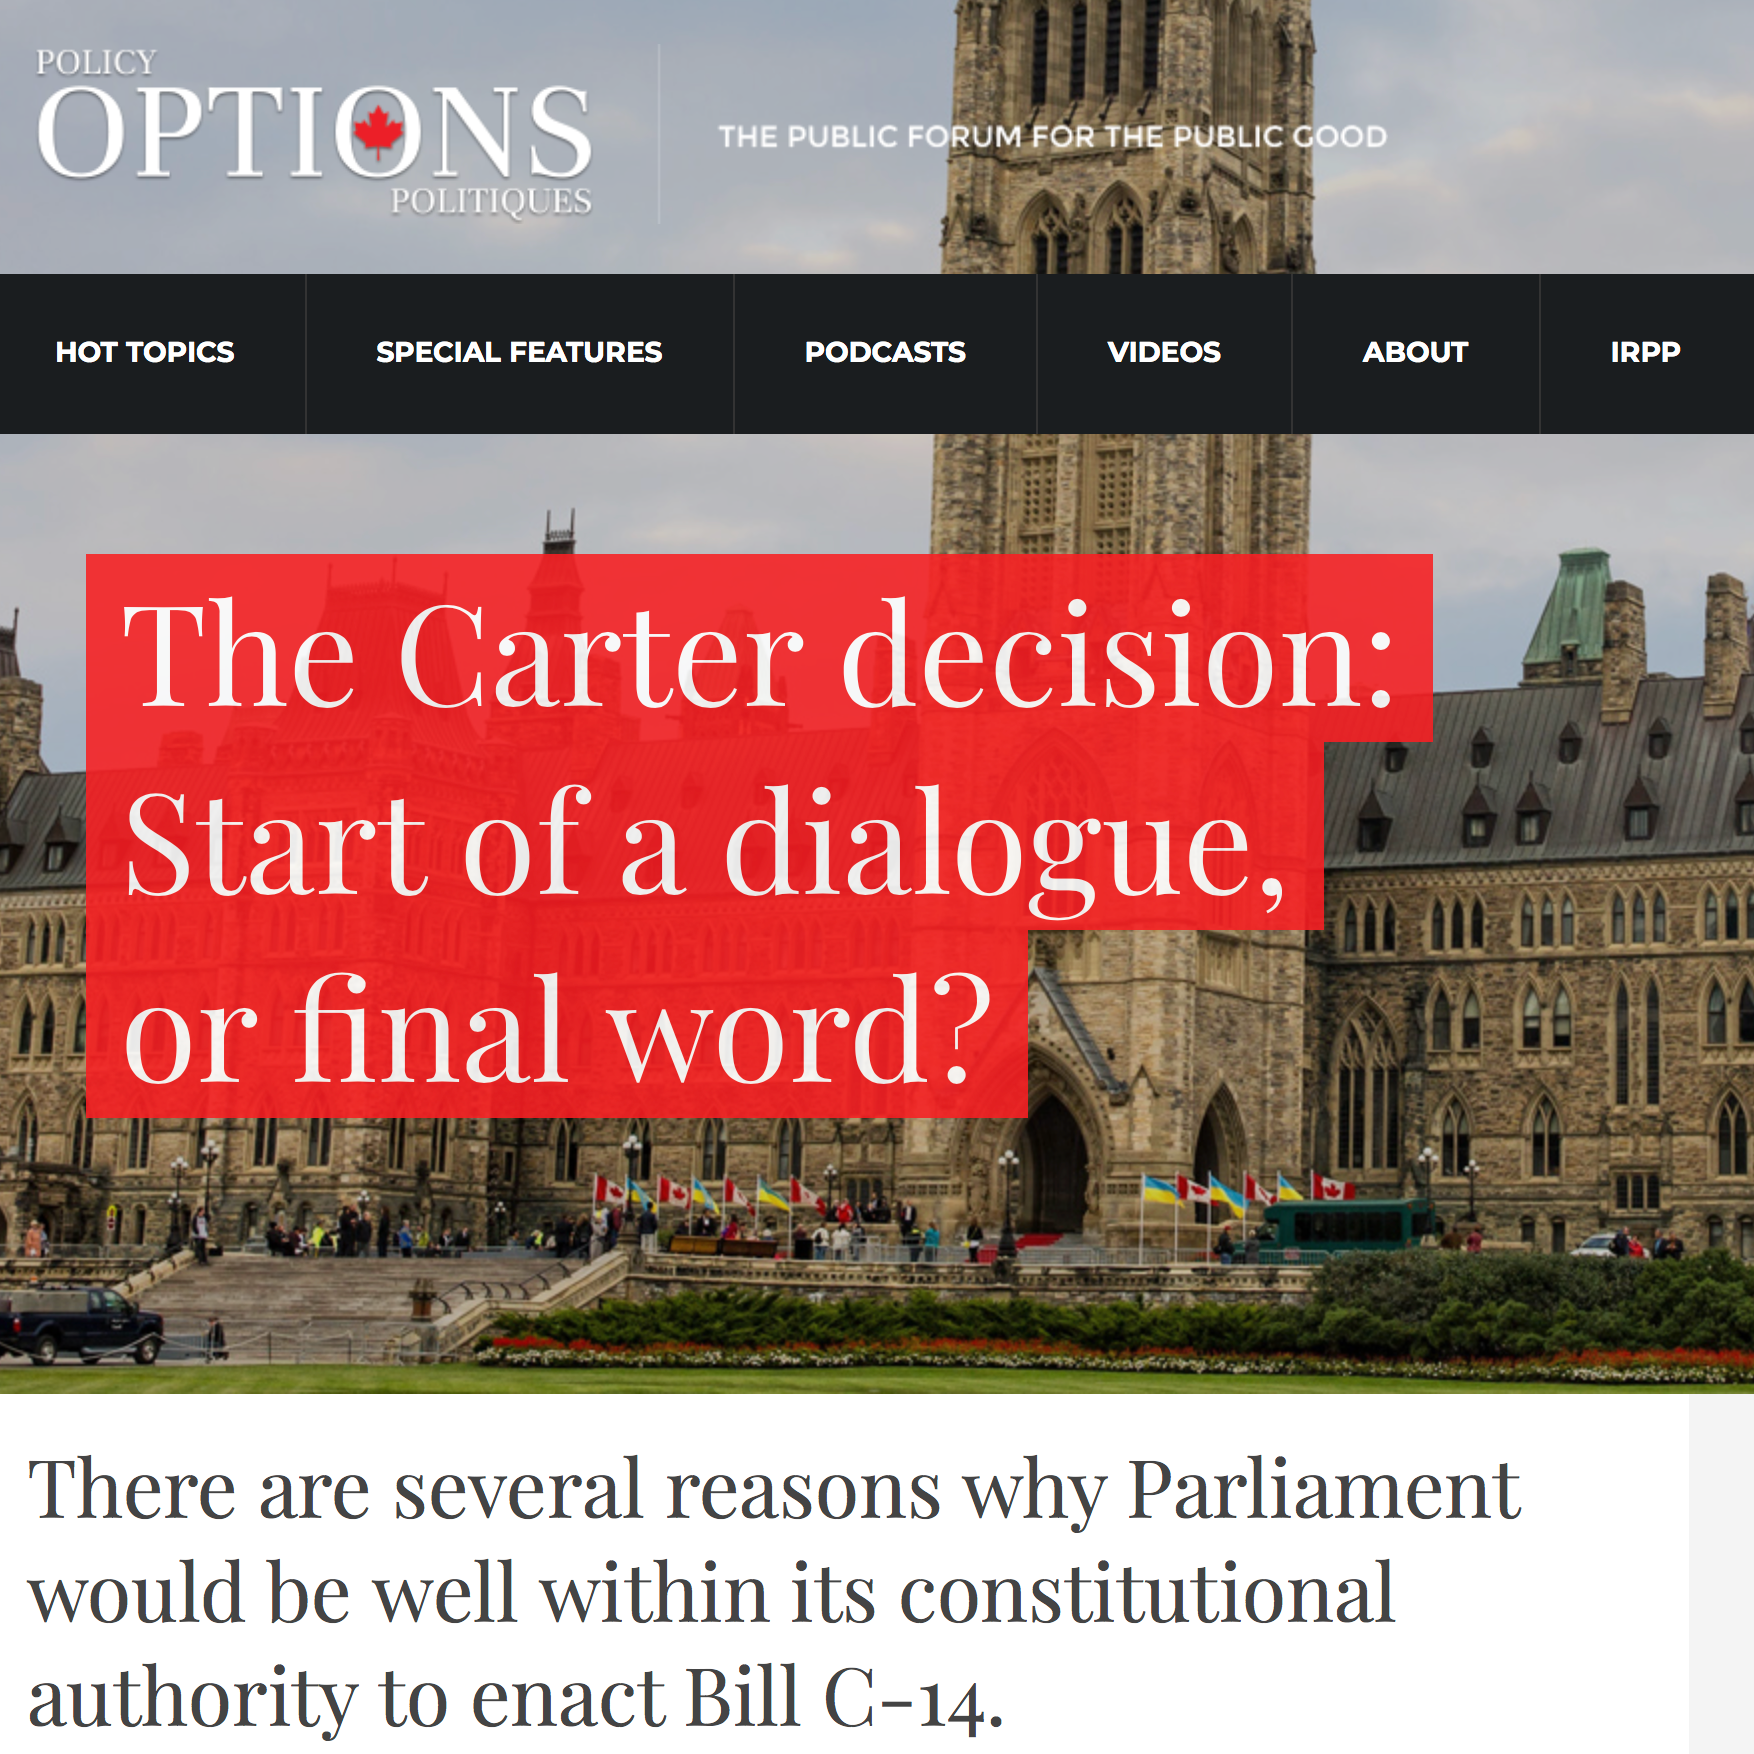 Policy Options:The Carter decision: Start of a dialogue, or final word? - John Sikkema